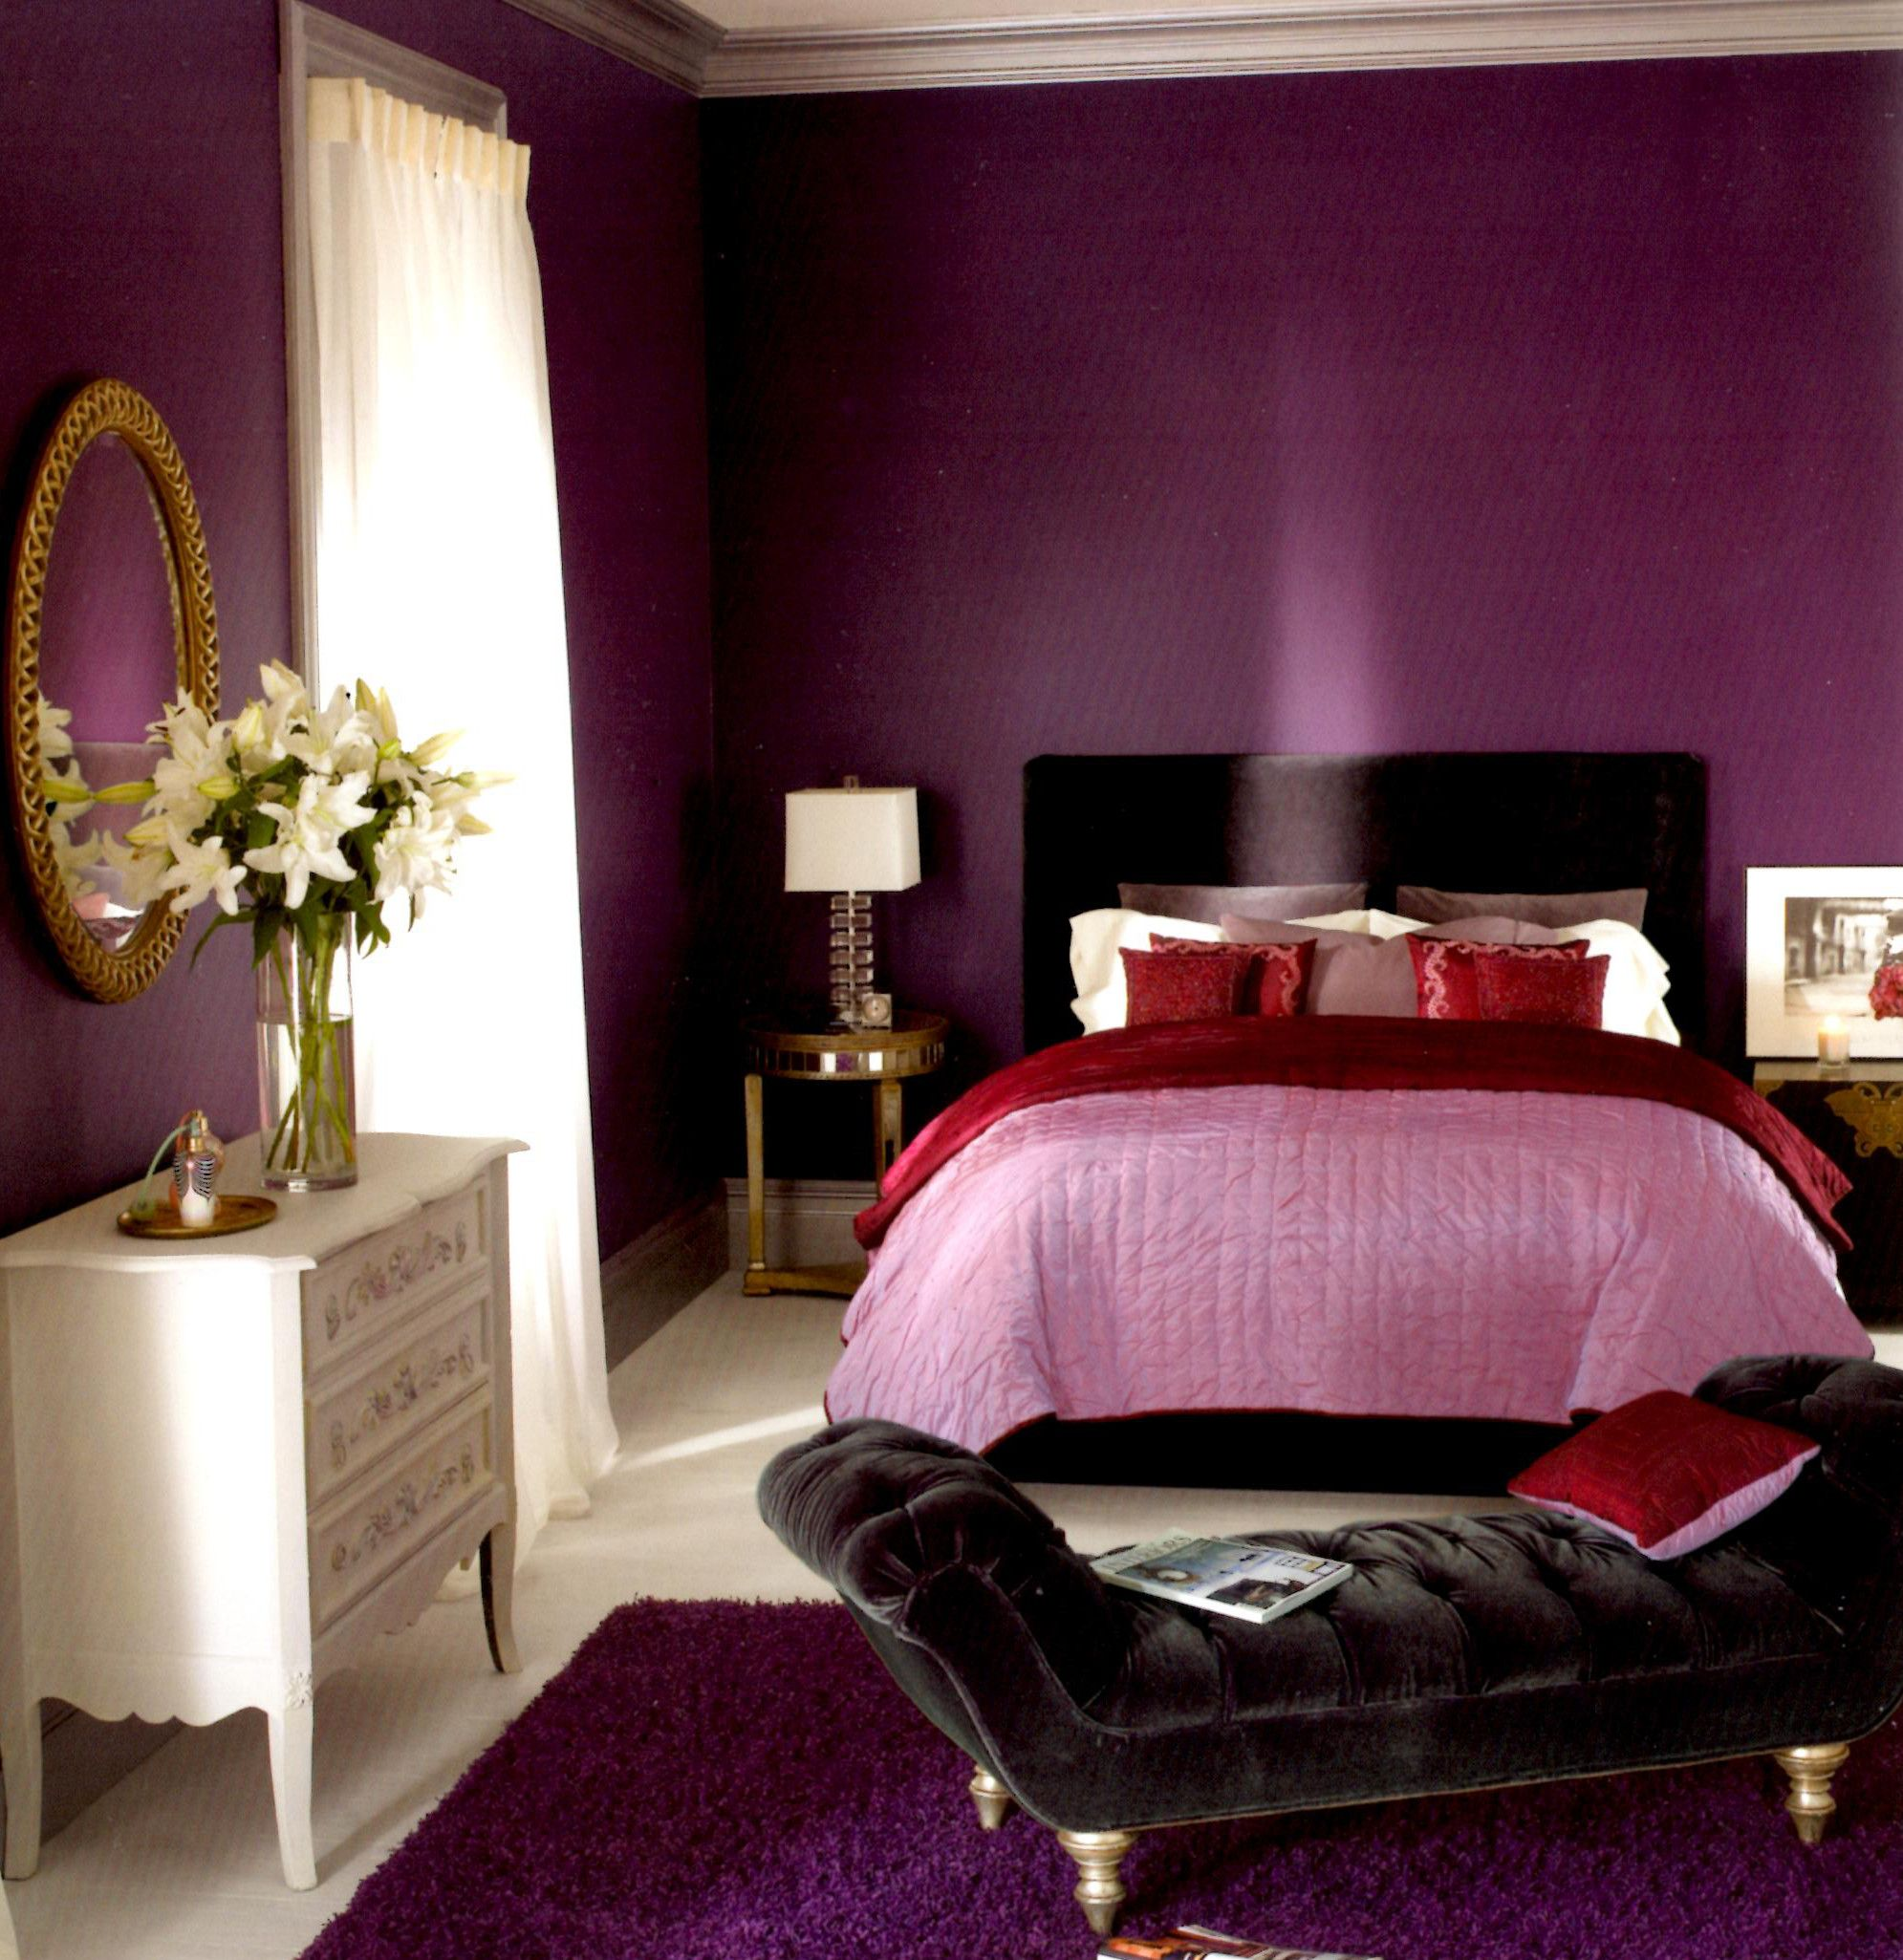 Purple and pink bedrooms - Remarkable Purple Wall Paneling Colors As Smart Bedroom Paint Ideas In Teenage Bedroom Decor Also White